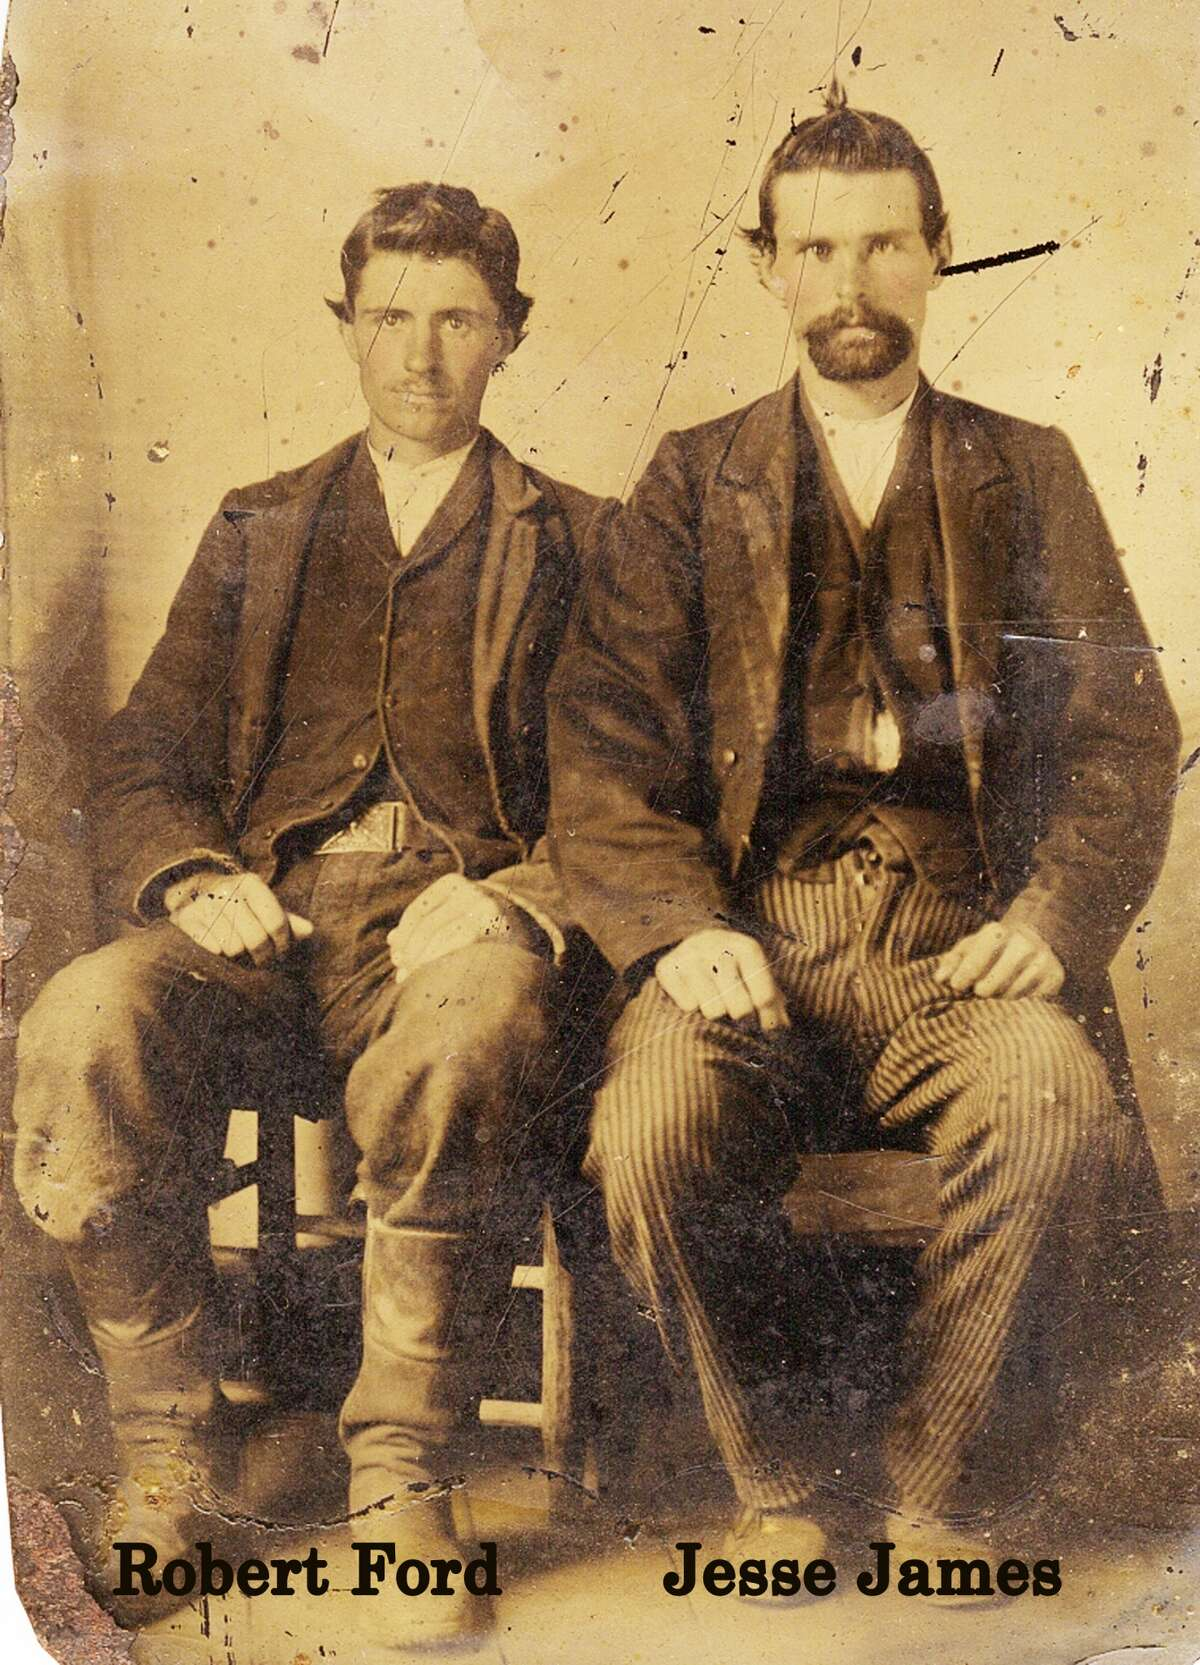 The rare tintype photo of Jesse James sitting beside his eventual murderer, Robert Ford, comes from the estate of San Antonio collectors Tommy and Sara Jane Howell. The lot, touting the prized photo and other antiques, is the second installment sold by Burley Auctions. The loose estimated sales price of the photo is $50,000 to $1 million.